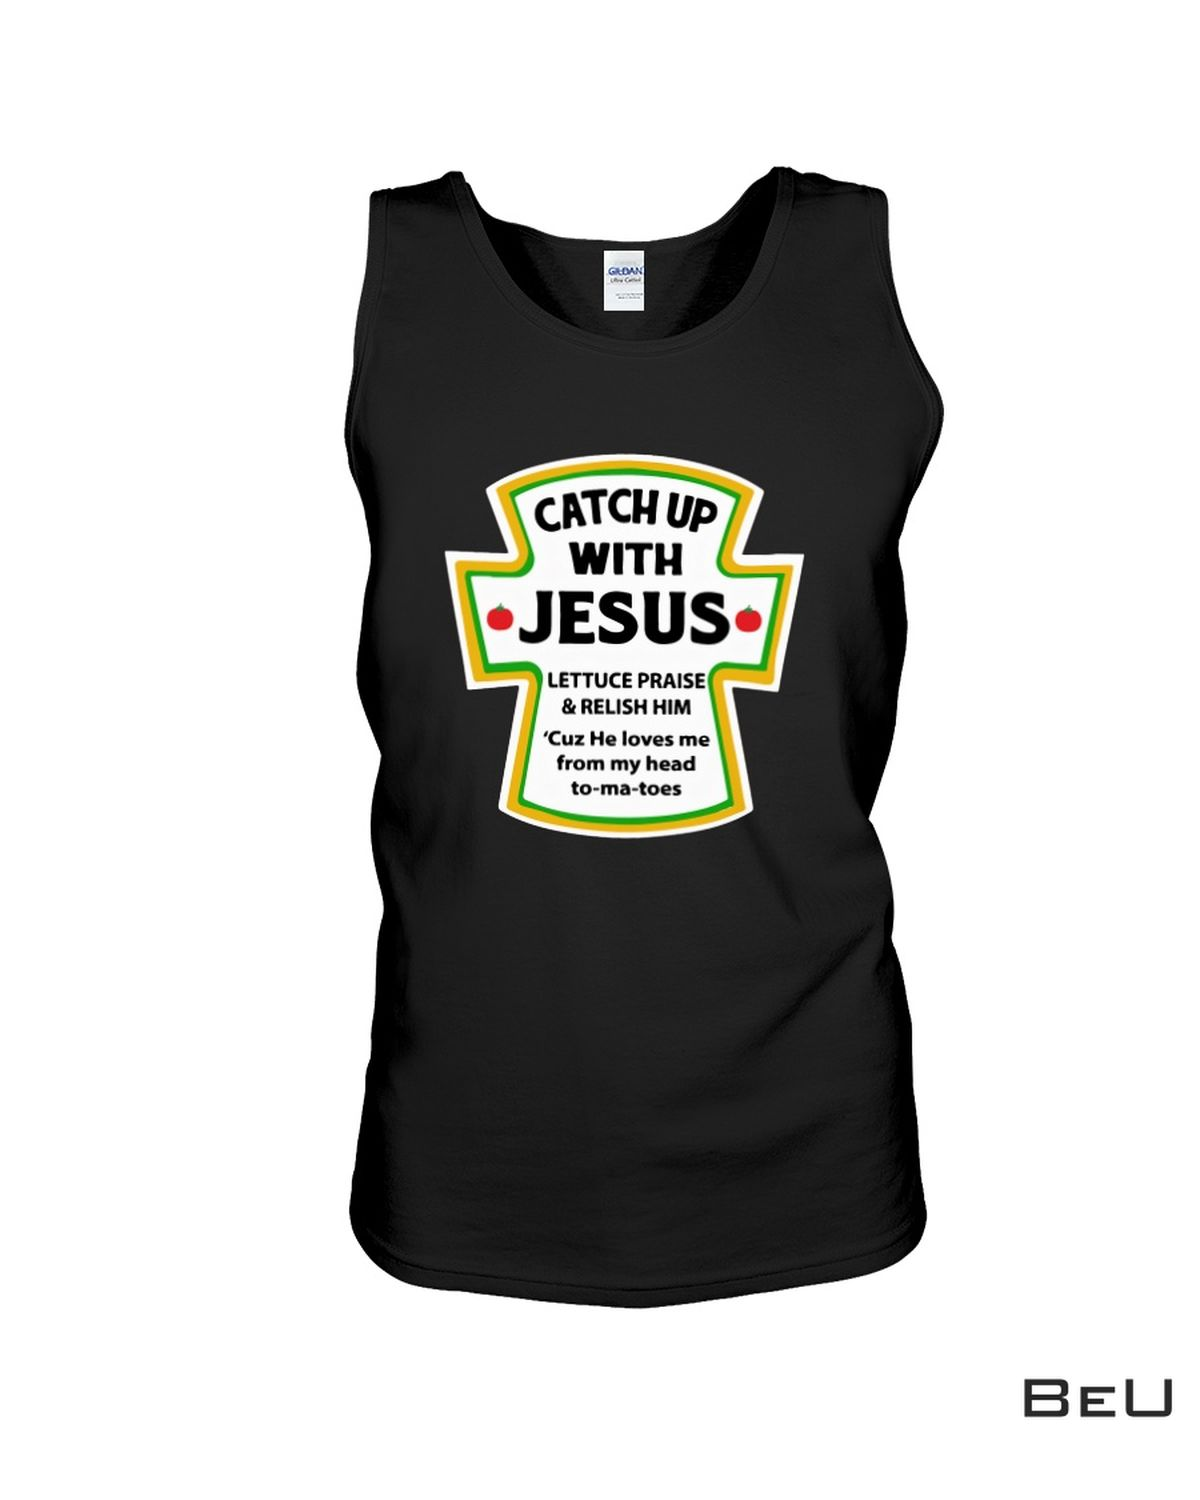 Real Catch Up With Jesus Ketchup Shirt, hoodie, tank top